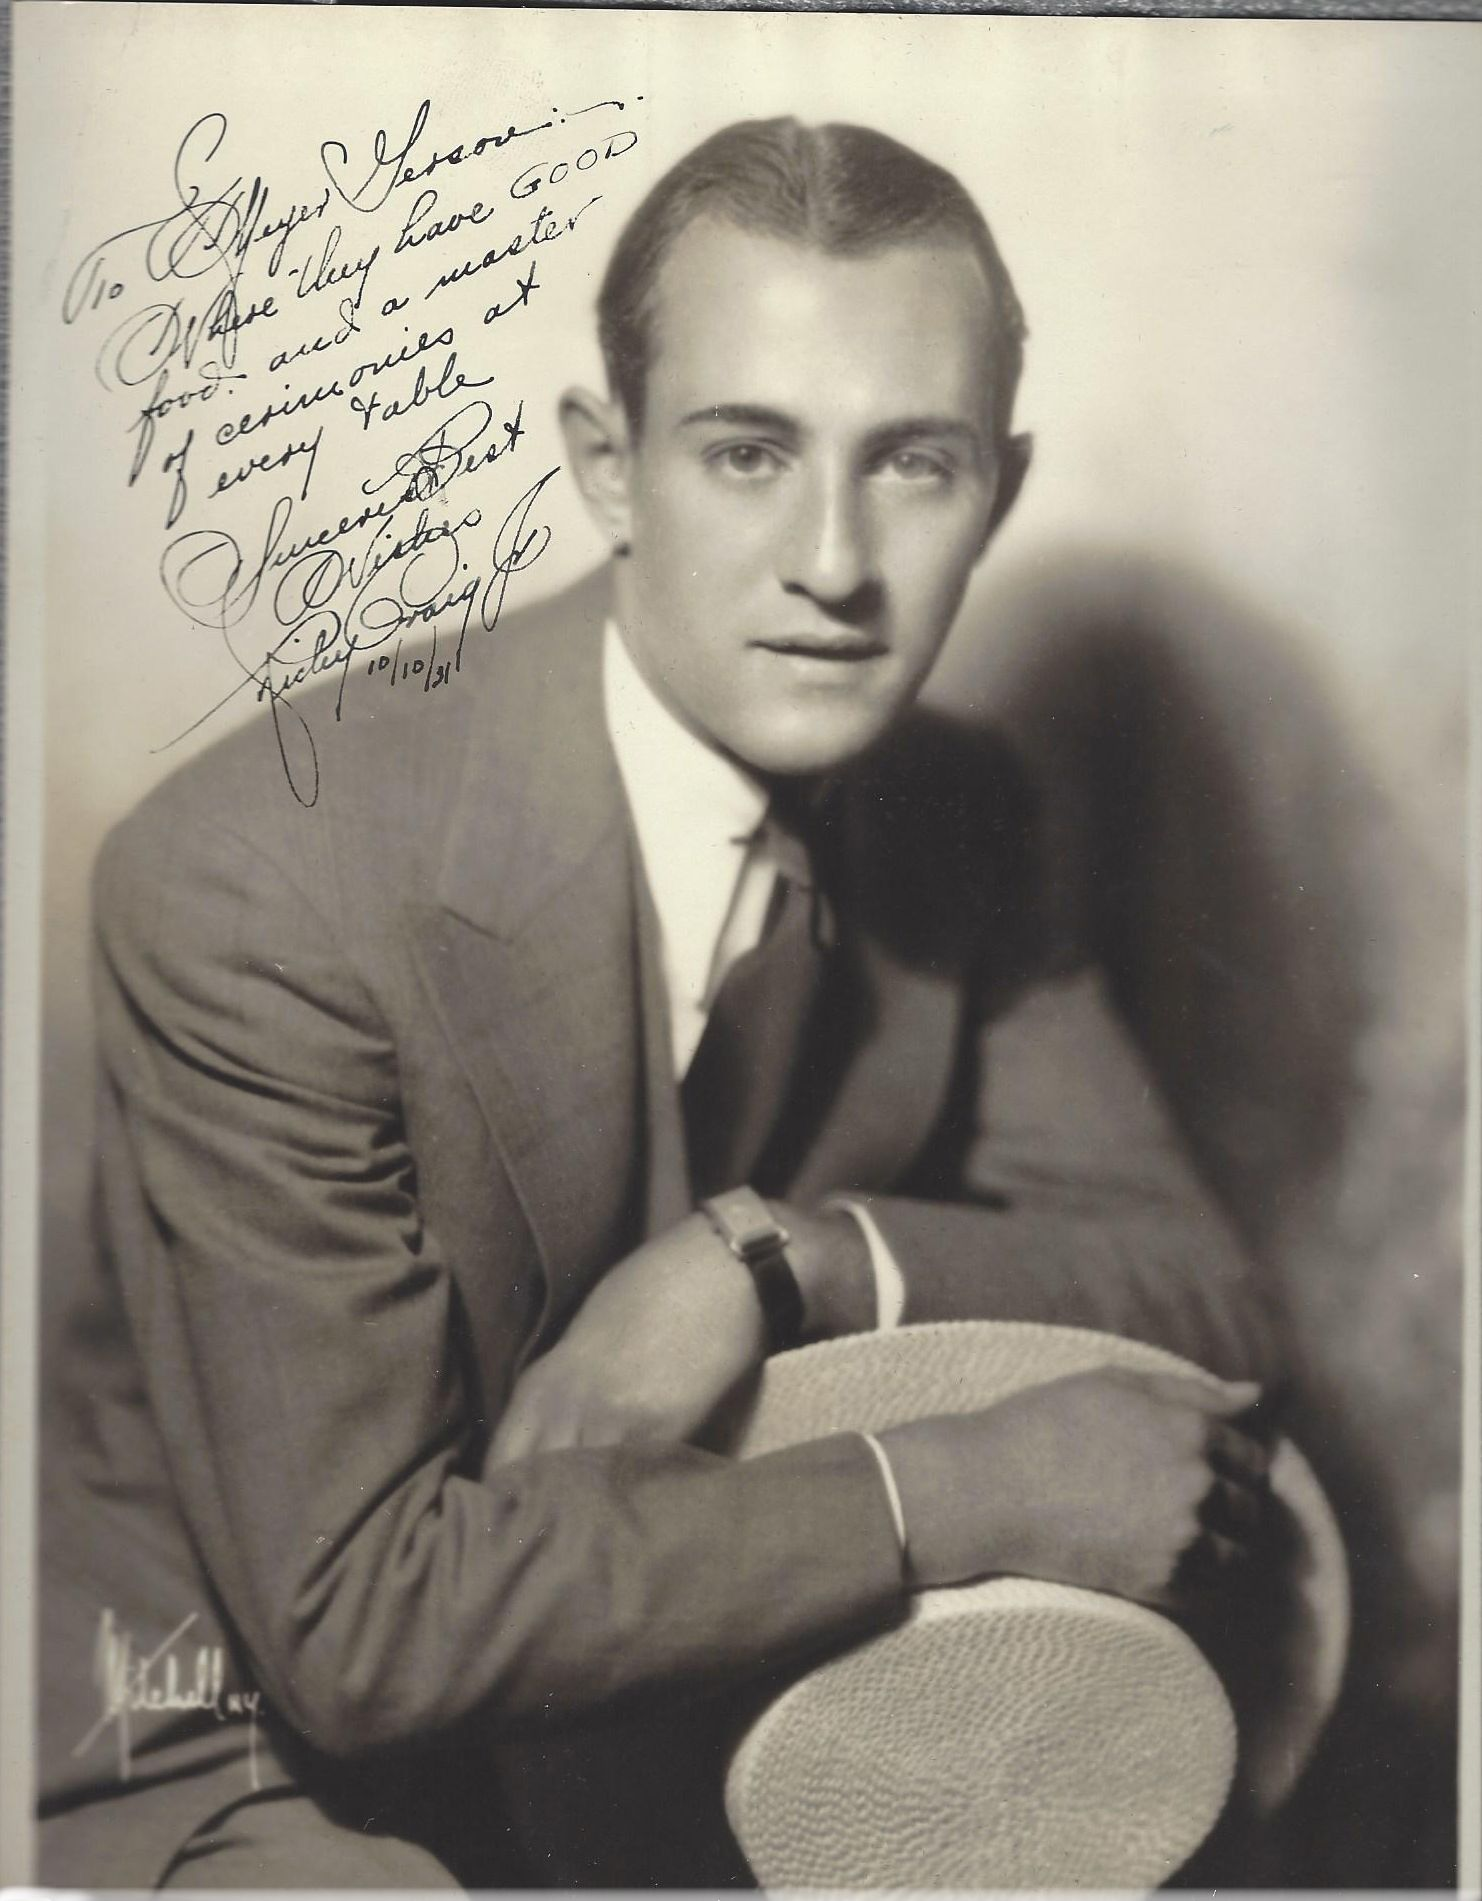 Richy Craig, Jr. - Actor -  (1902–1933) His early death was attributed to a weakened heart and a chronic illness aggravated by overwork.